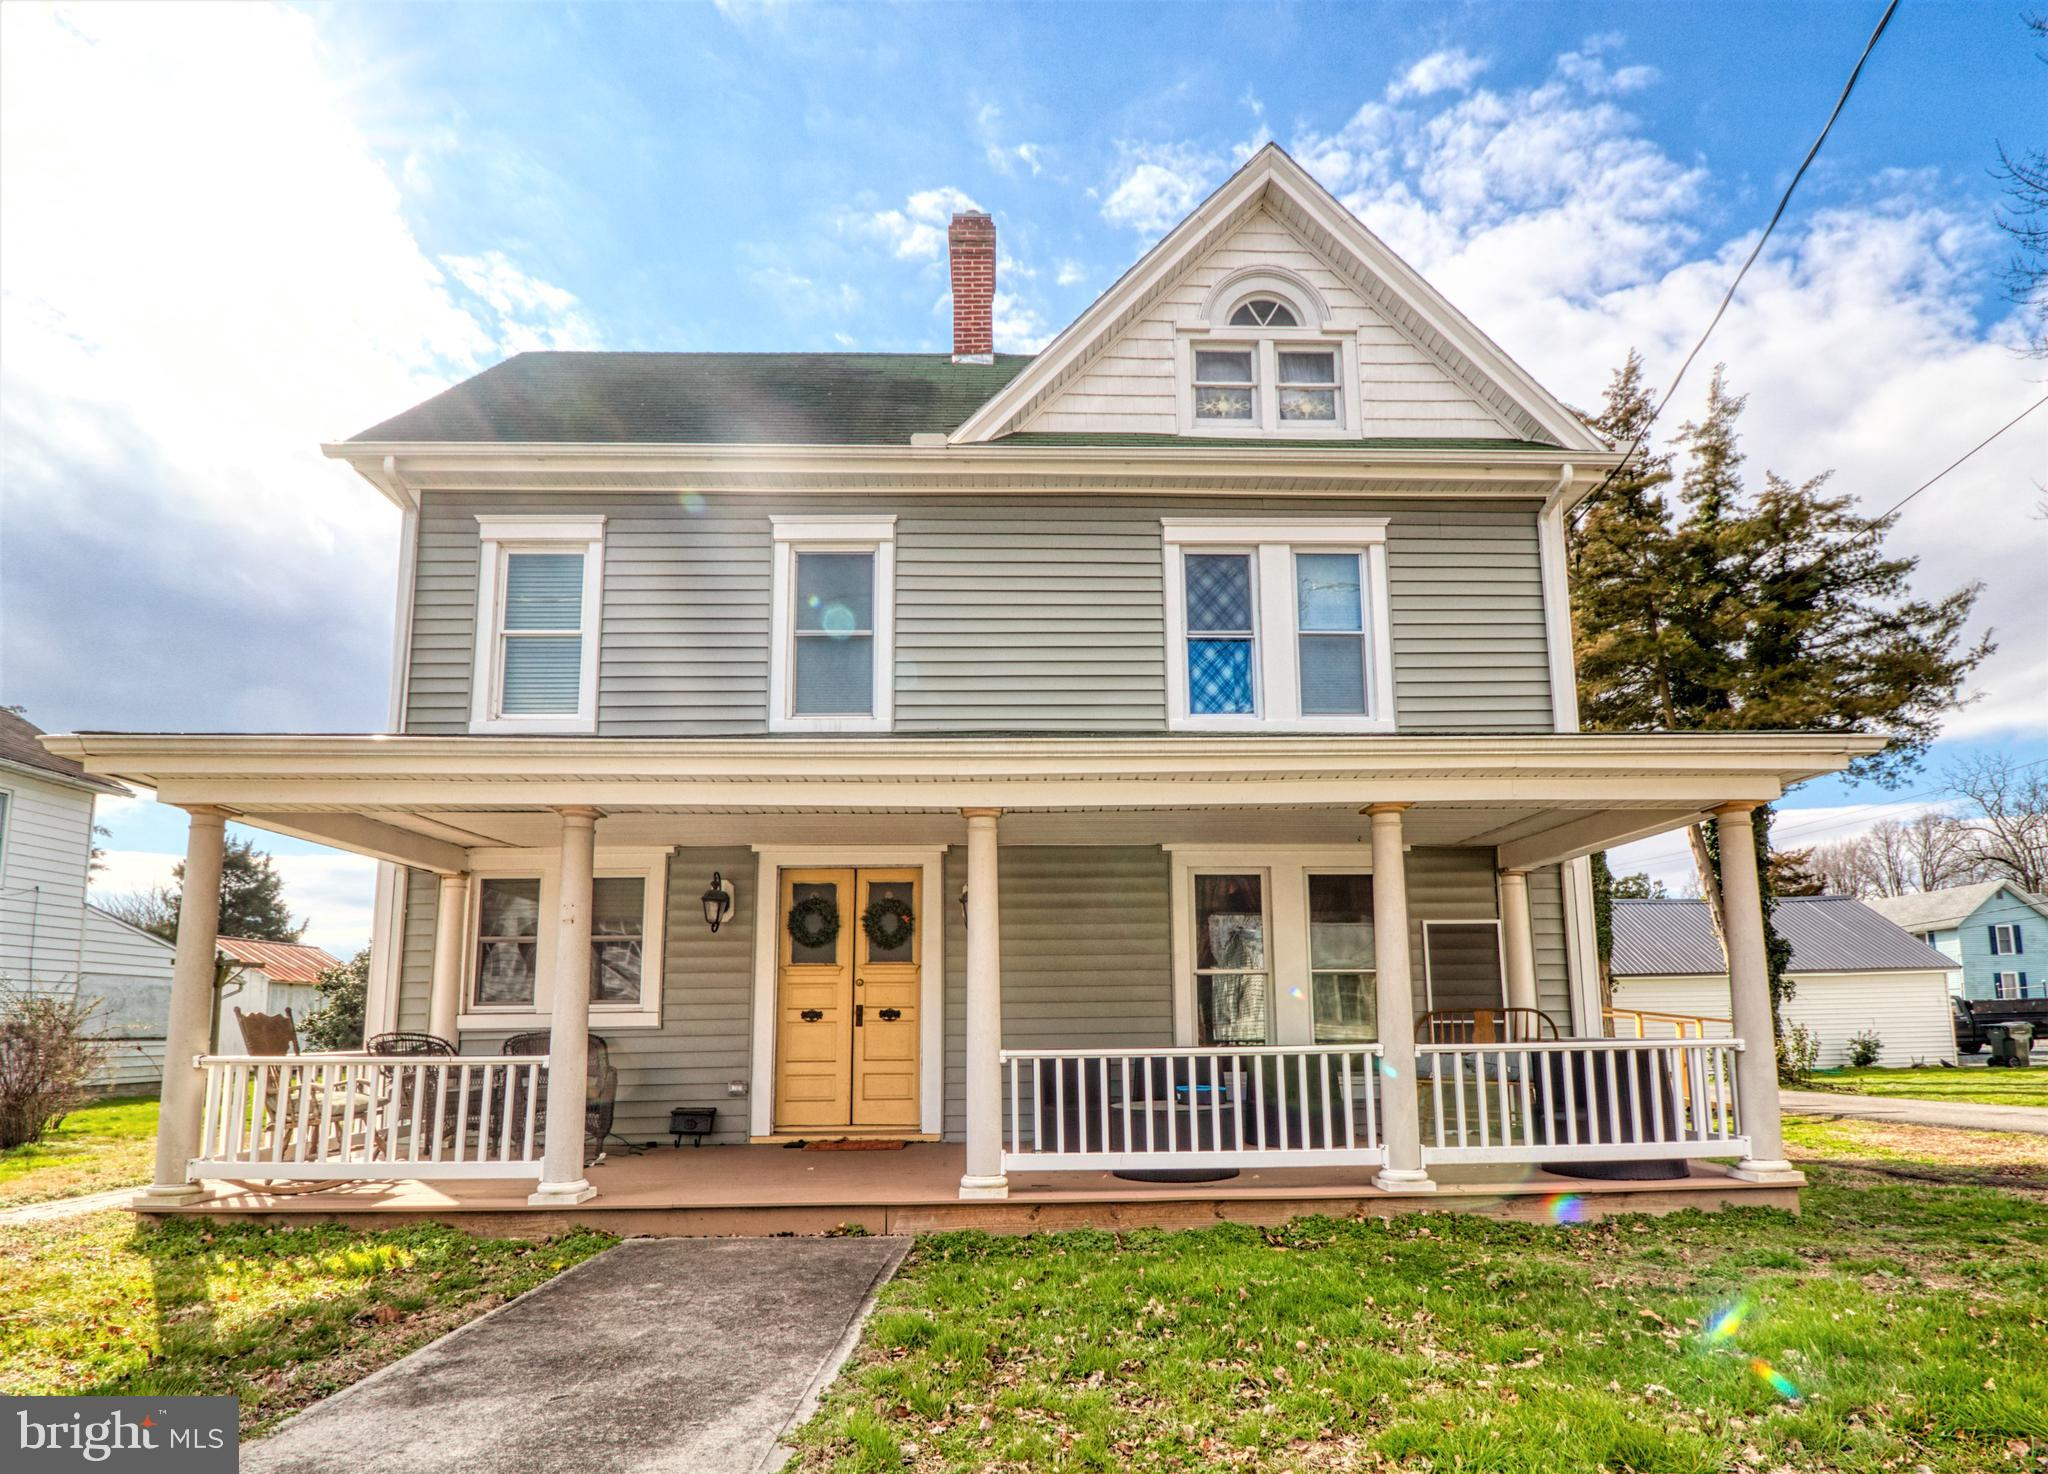 This Fabulous 1910 colonial was totally renovated in 2017! New HVAC units, plumbing, electric, drywa